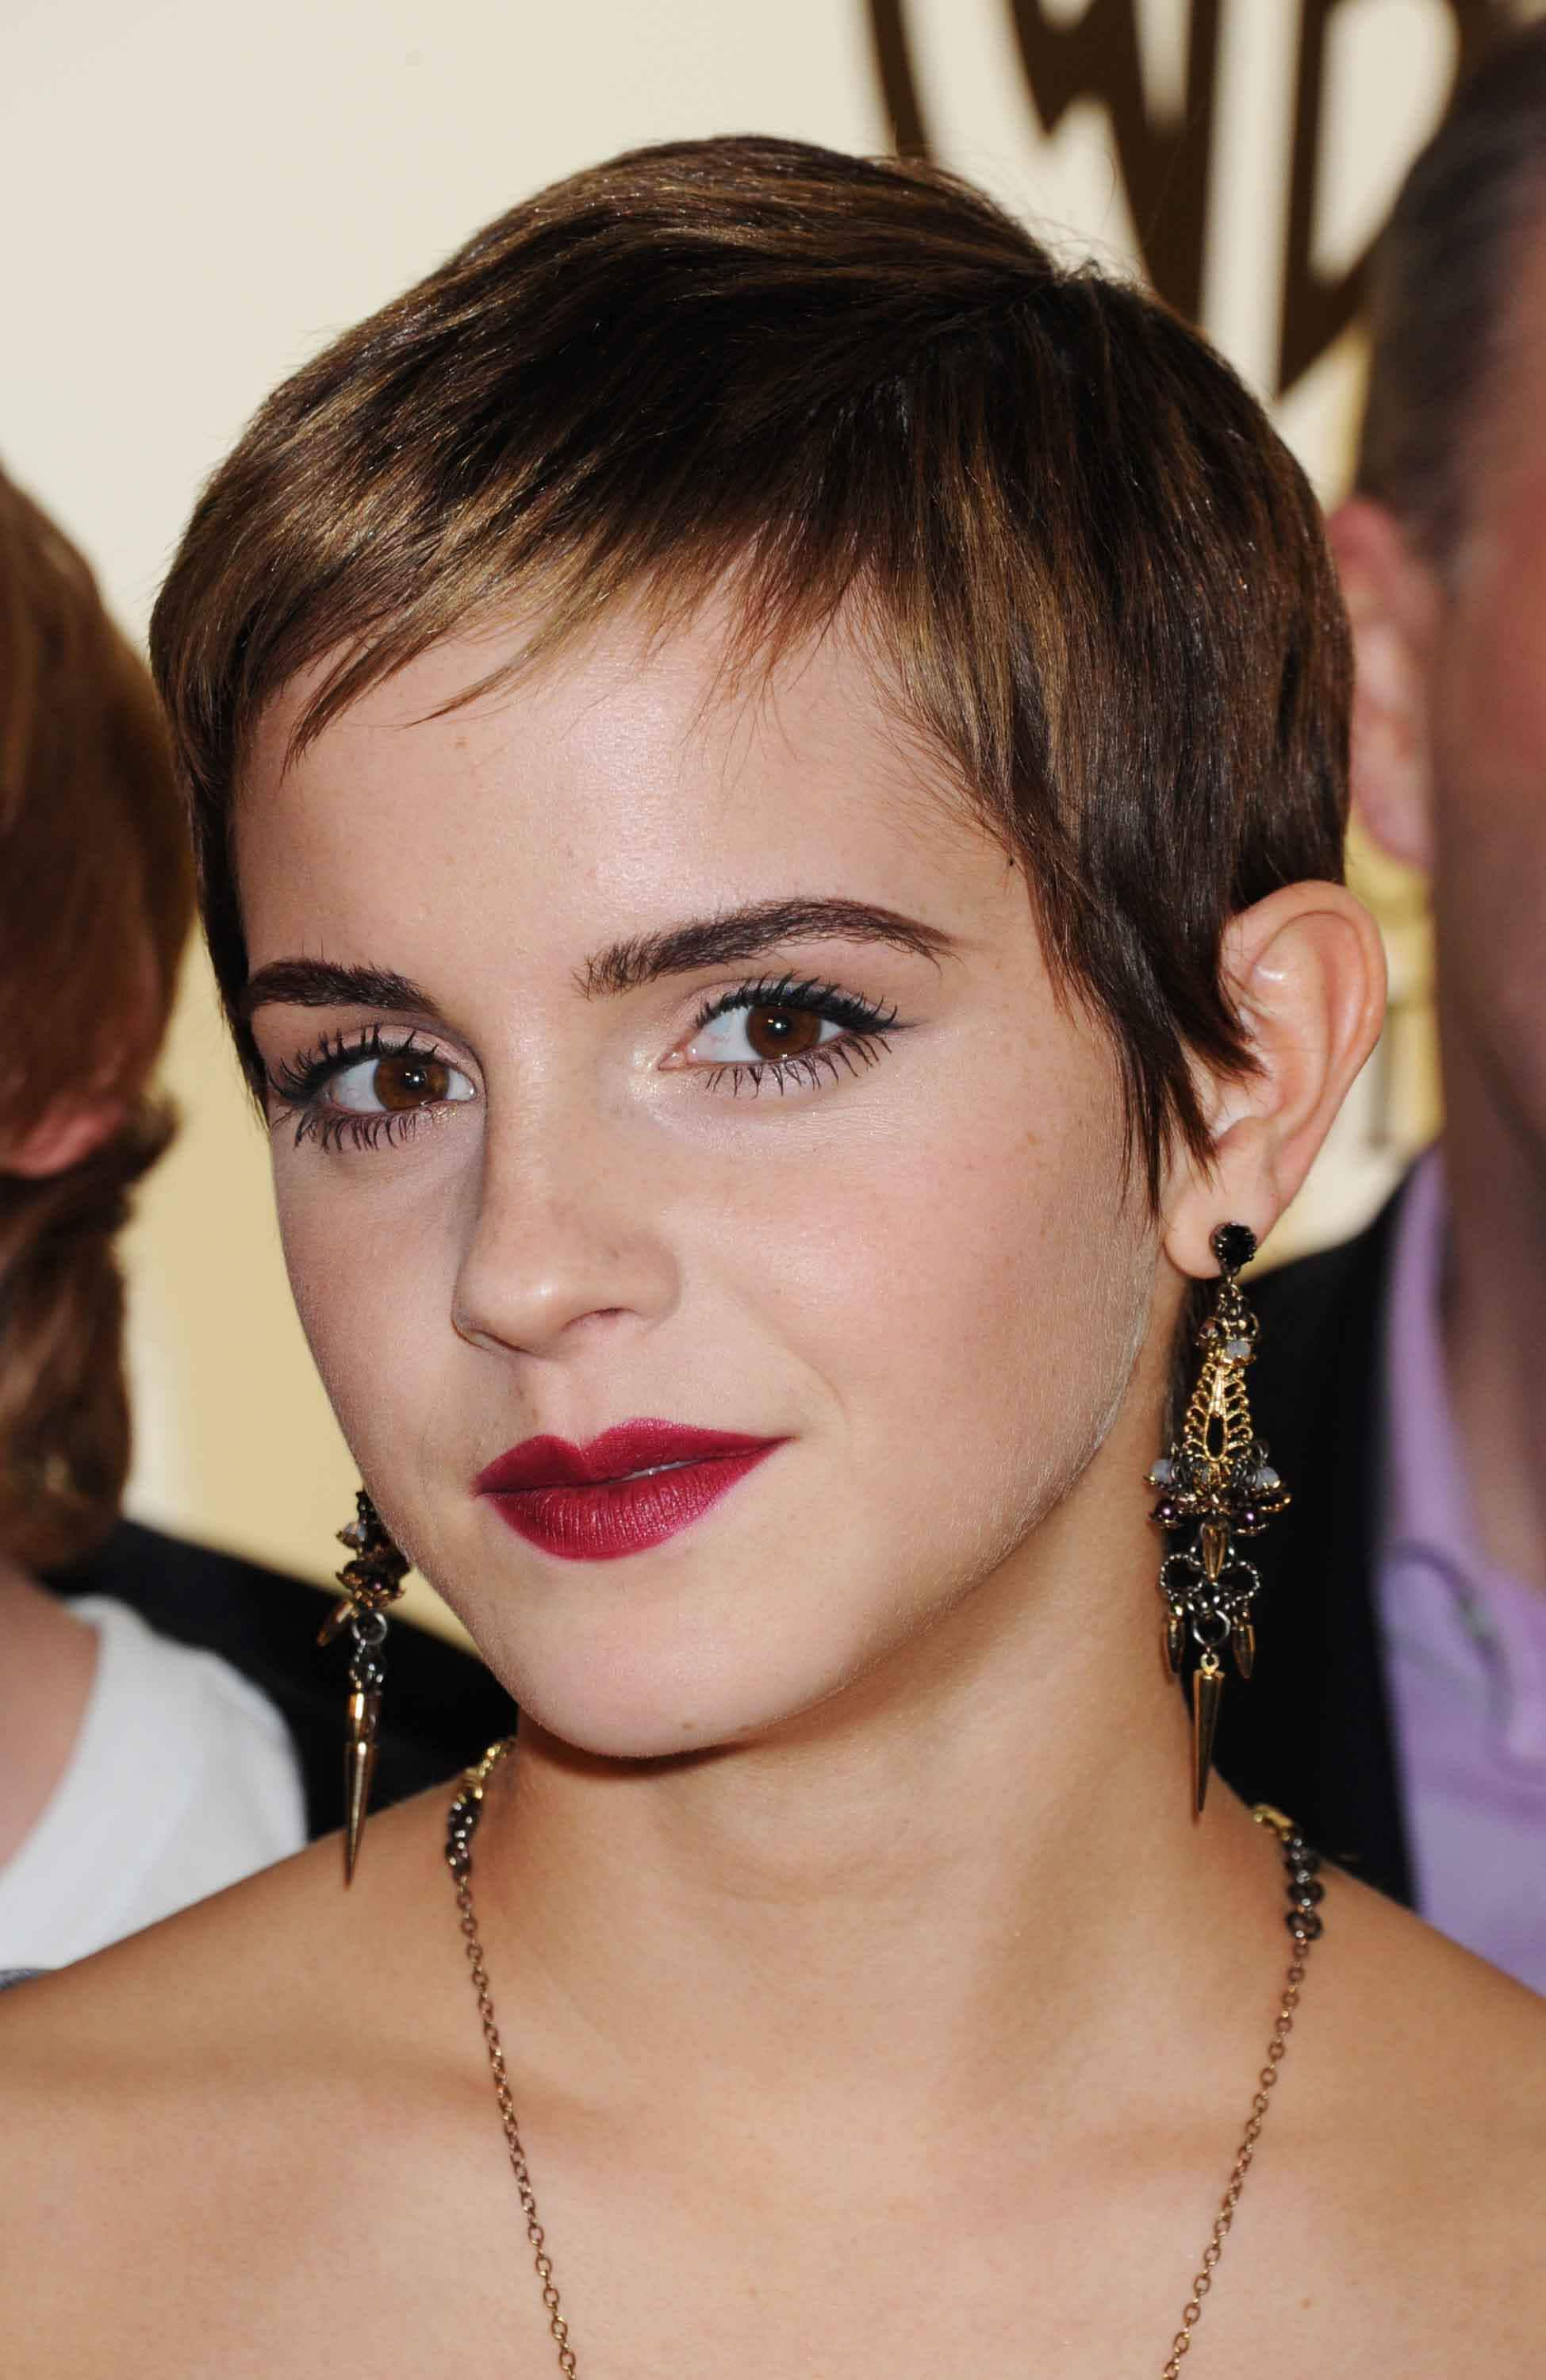 emma watson haircut 2017 - photo #37